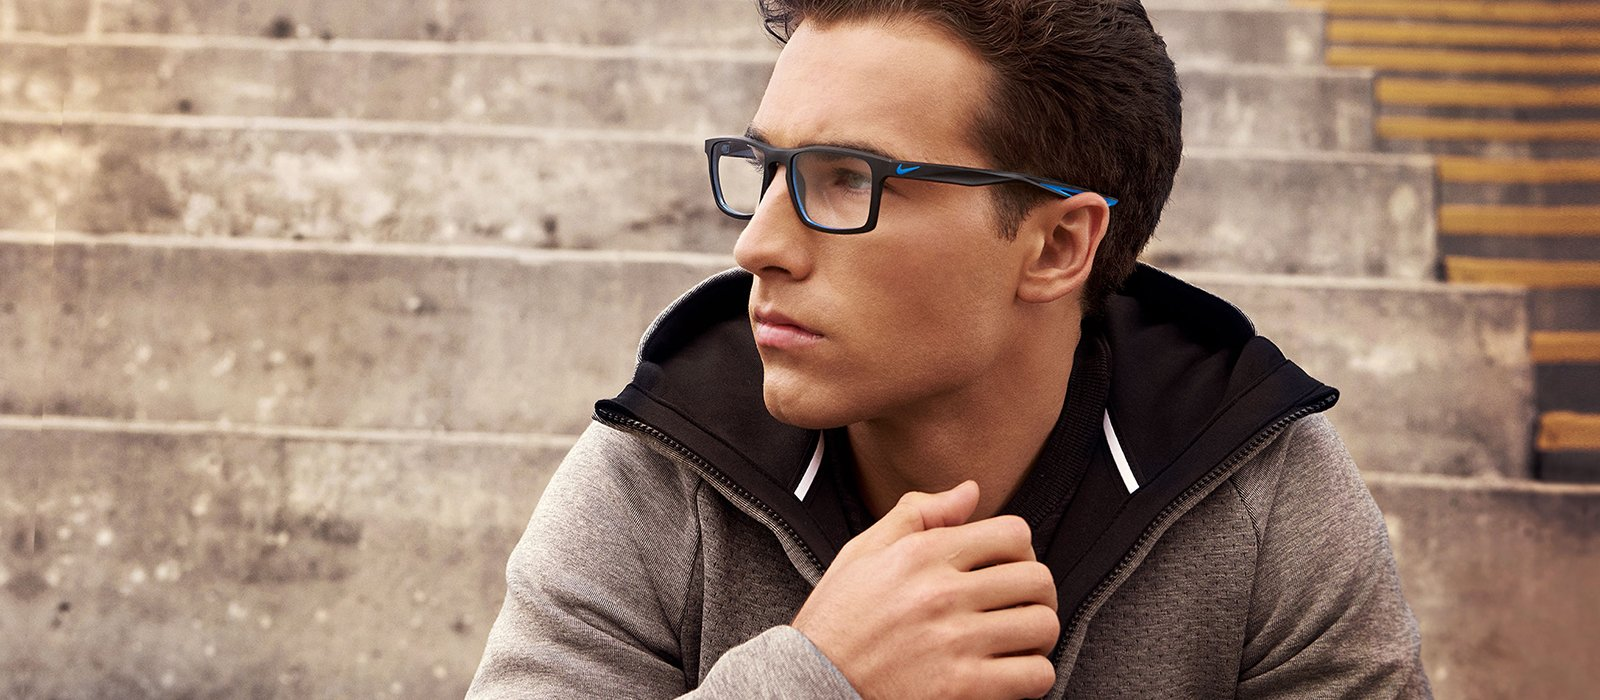 Nike glasses for men by Advanced-Family-Eyecare